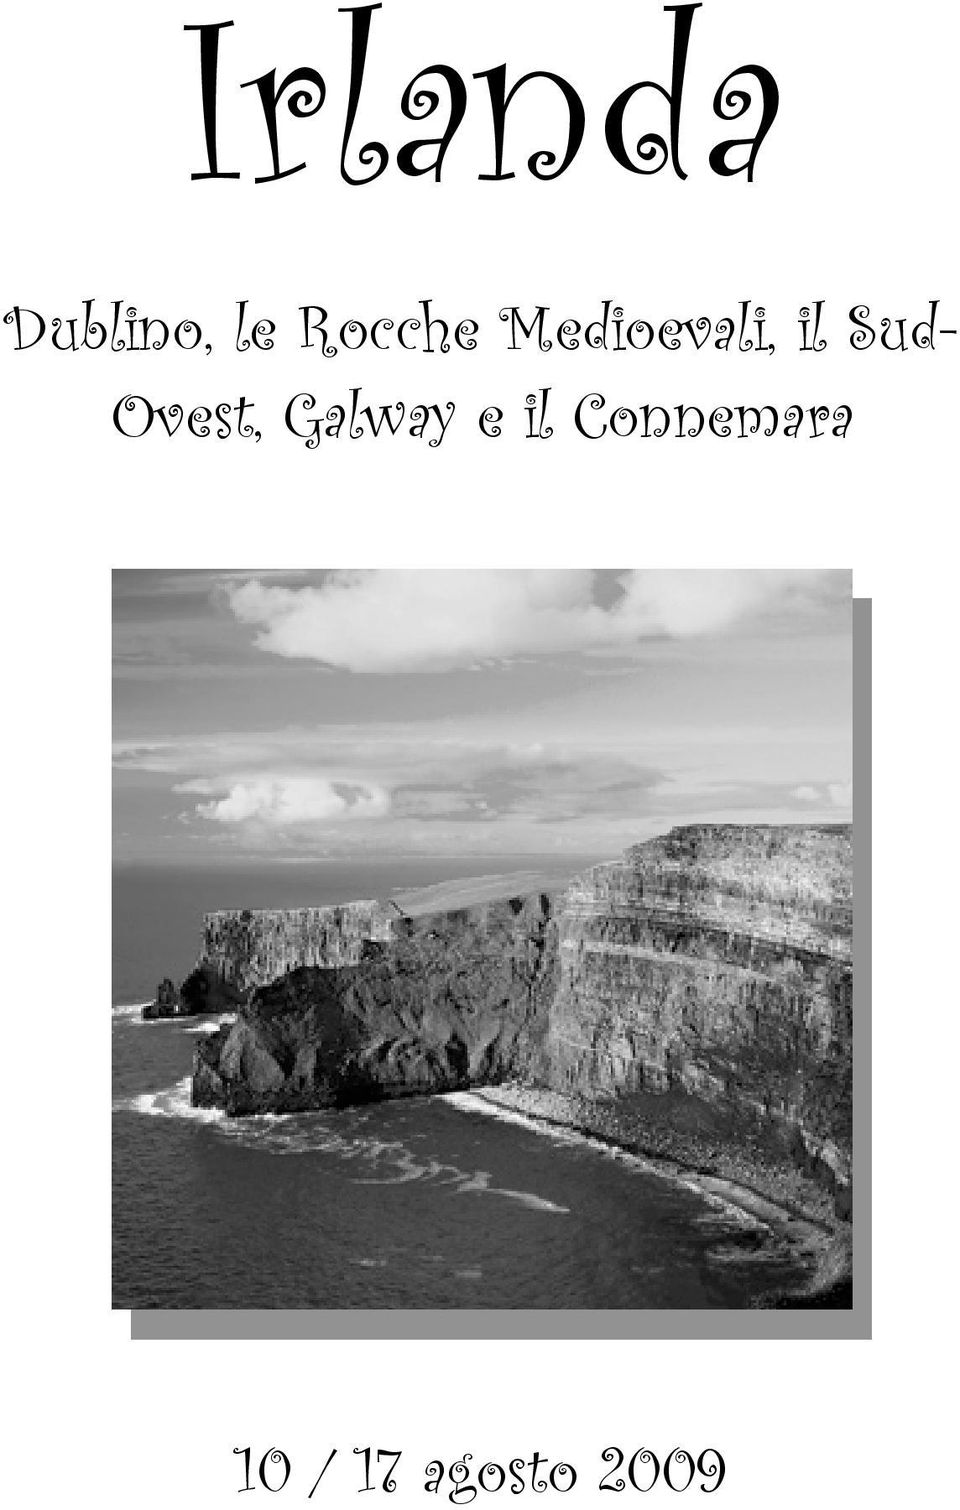 Sud- Ovest, Galway e il